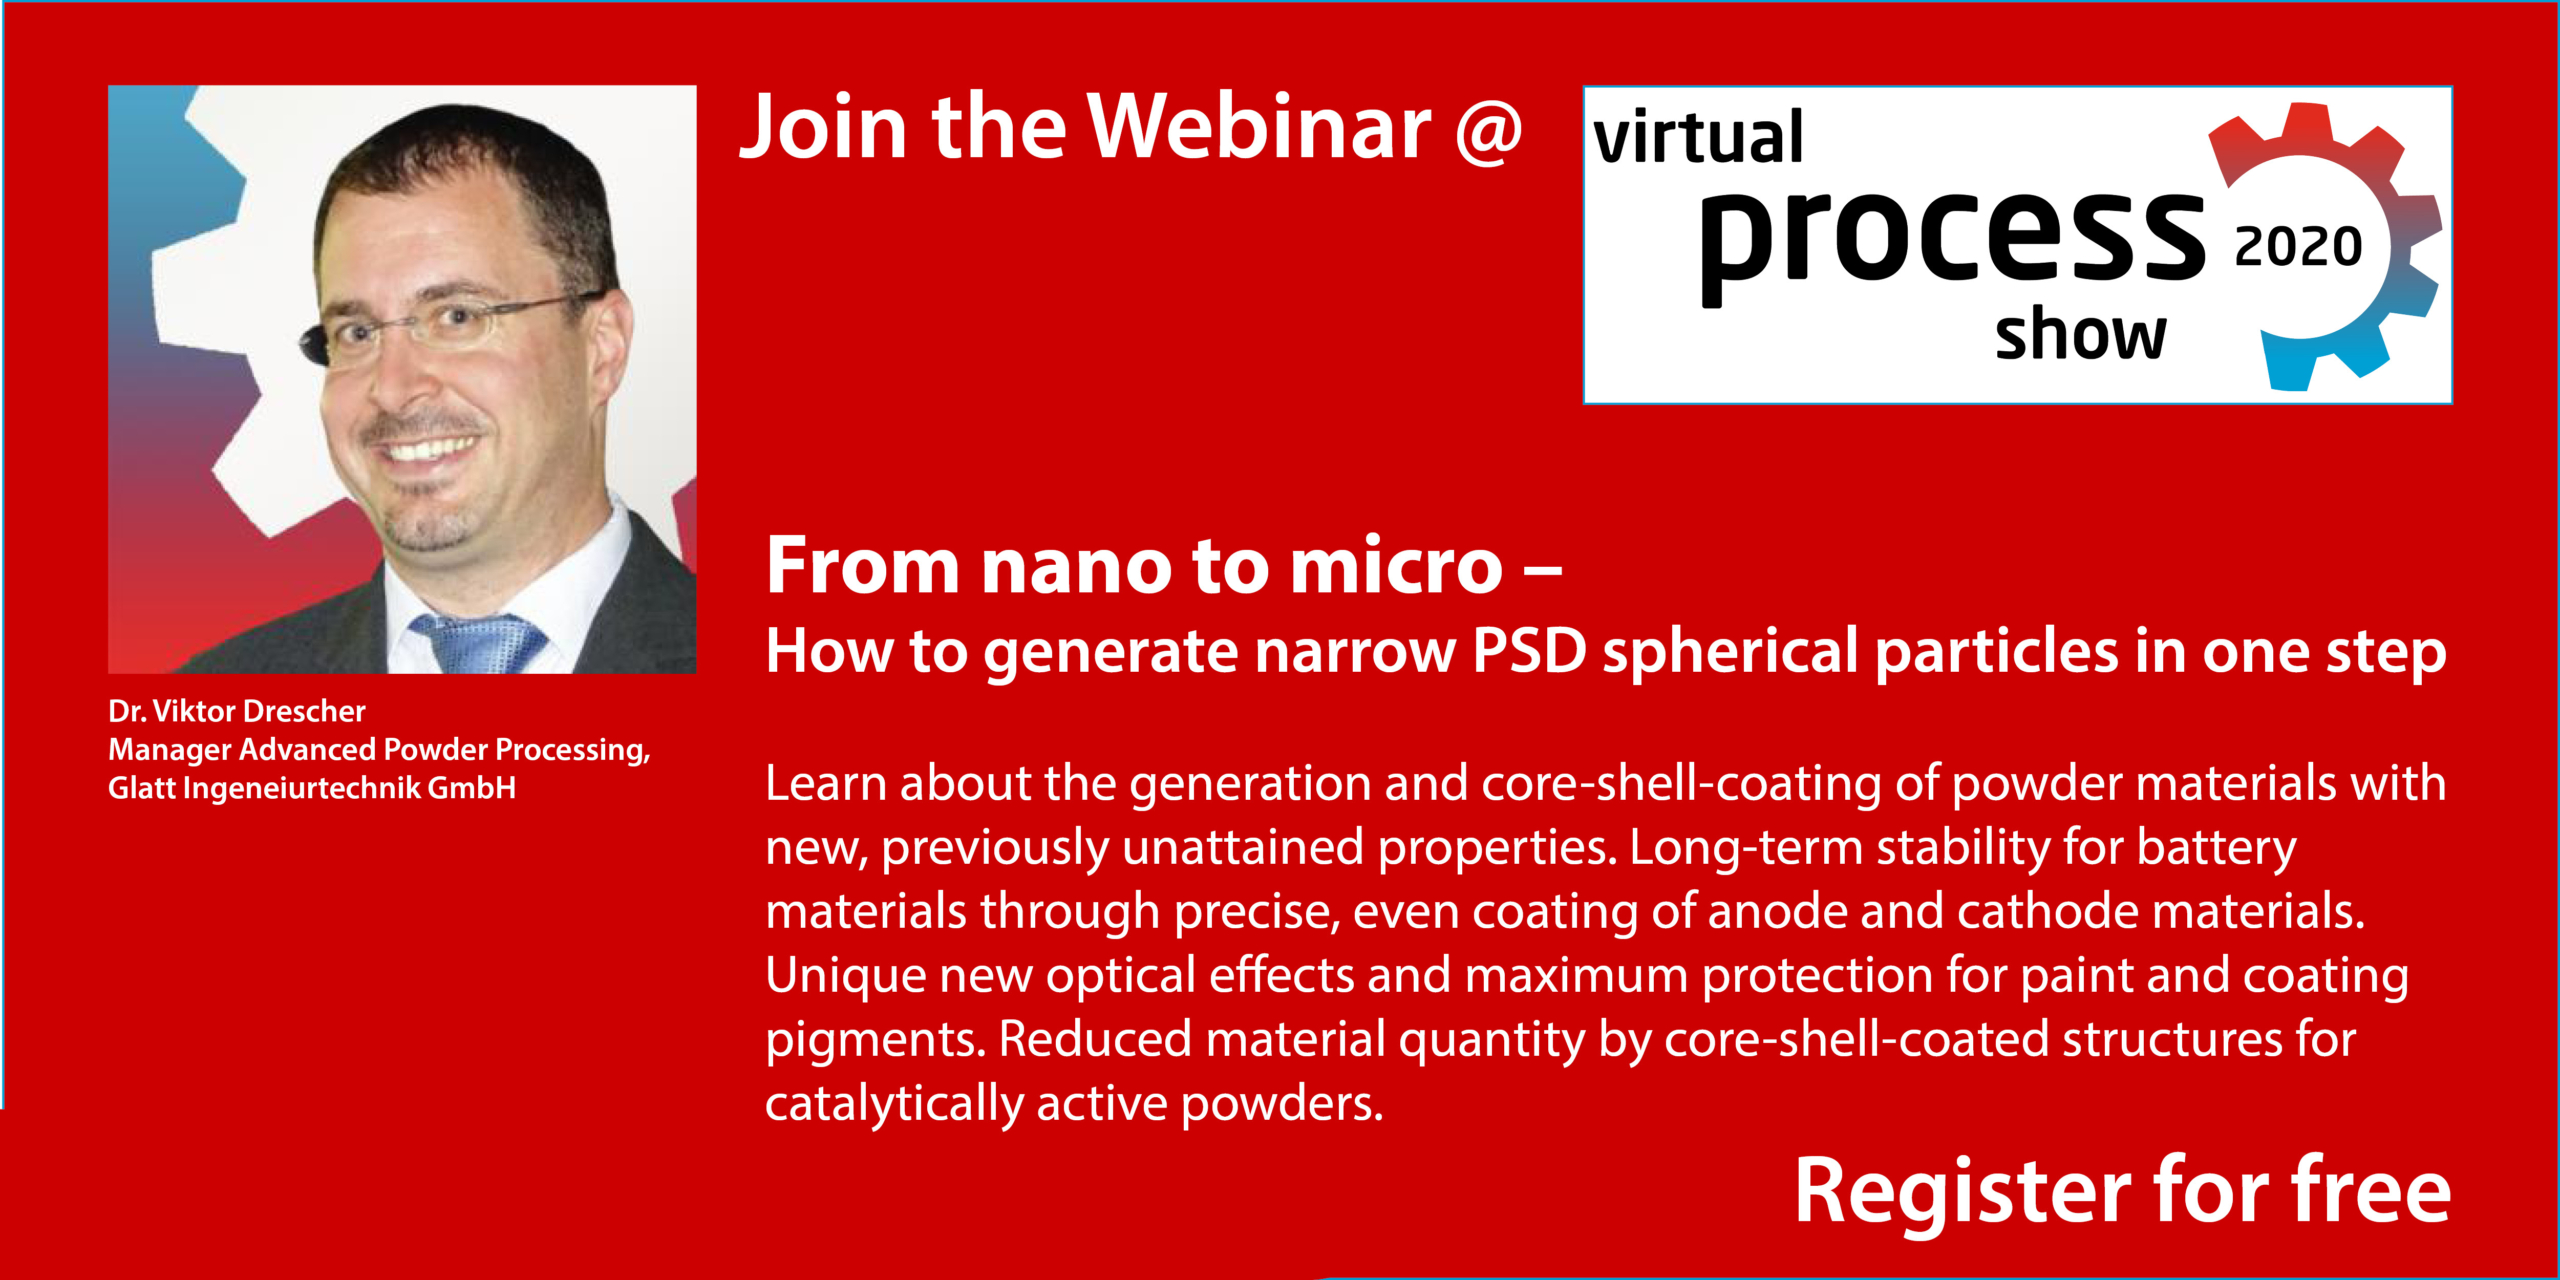 Join the Webinar: From nano to micro